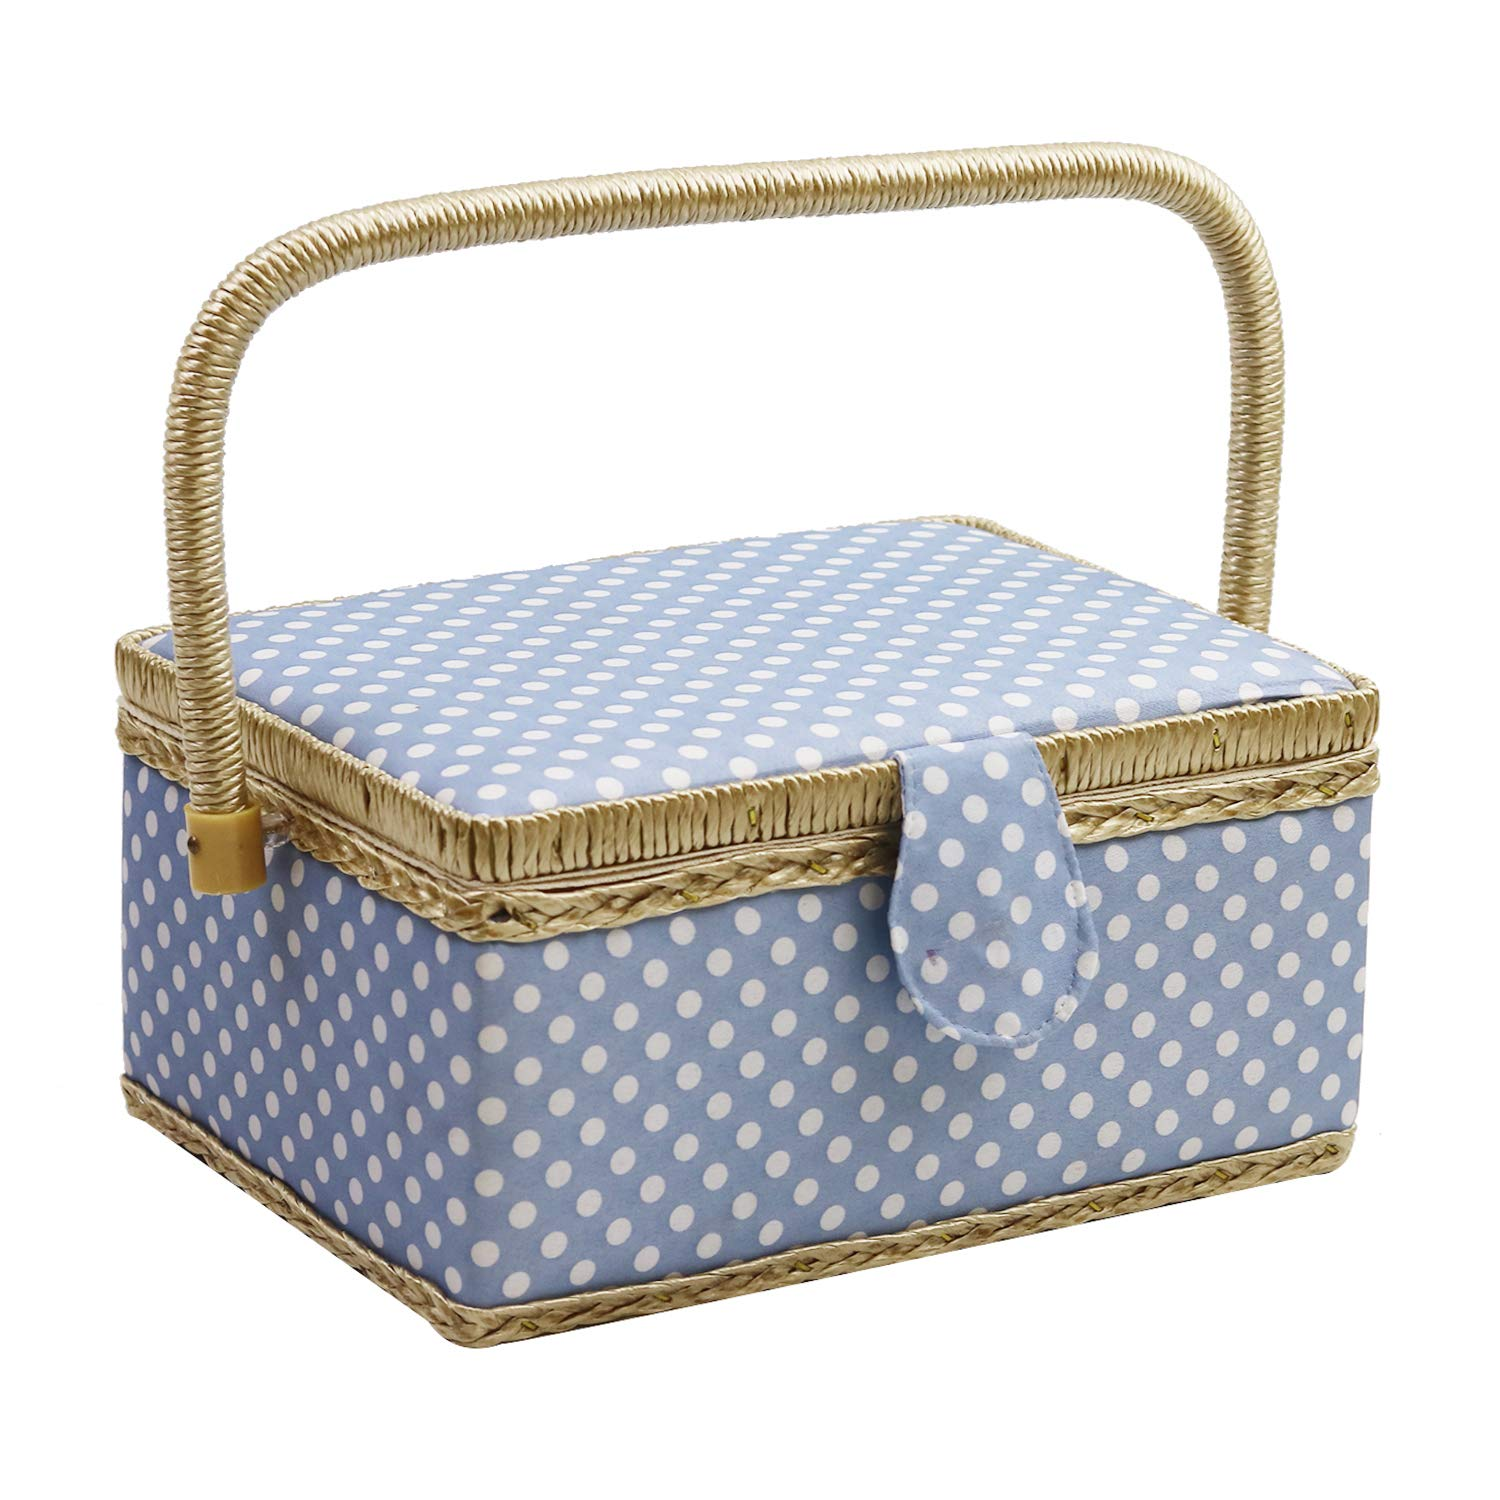 D& D Sewing Basket with Sewing Kit Accessories, Medium, Blue, 13400-701 13400-700